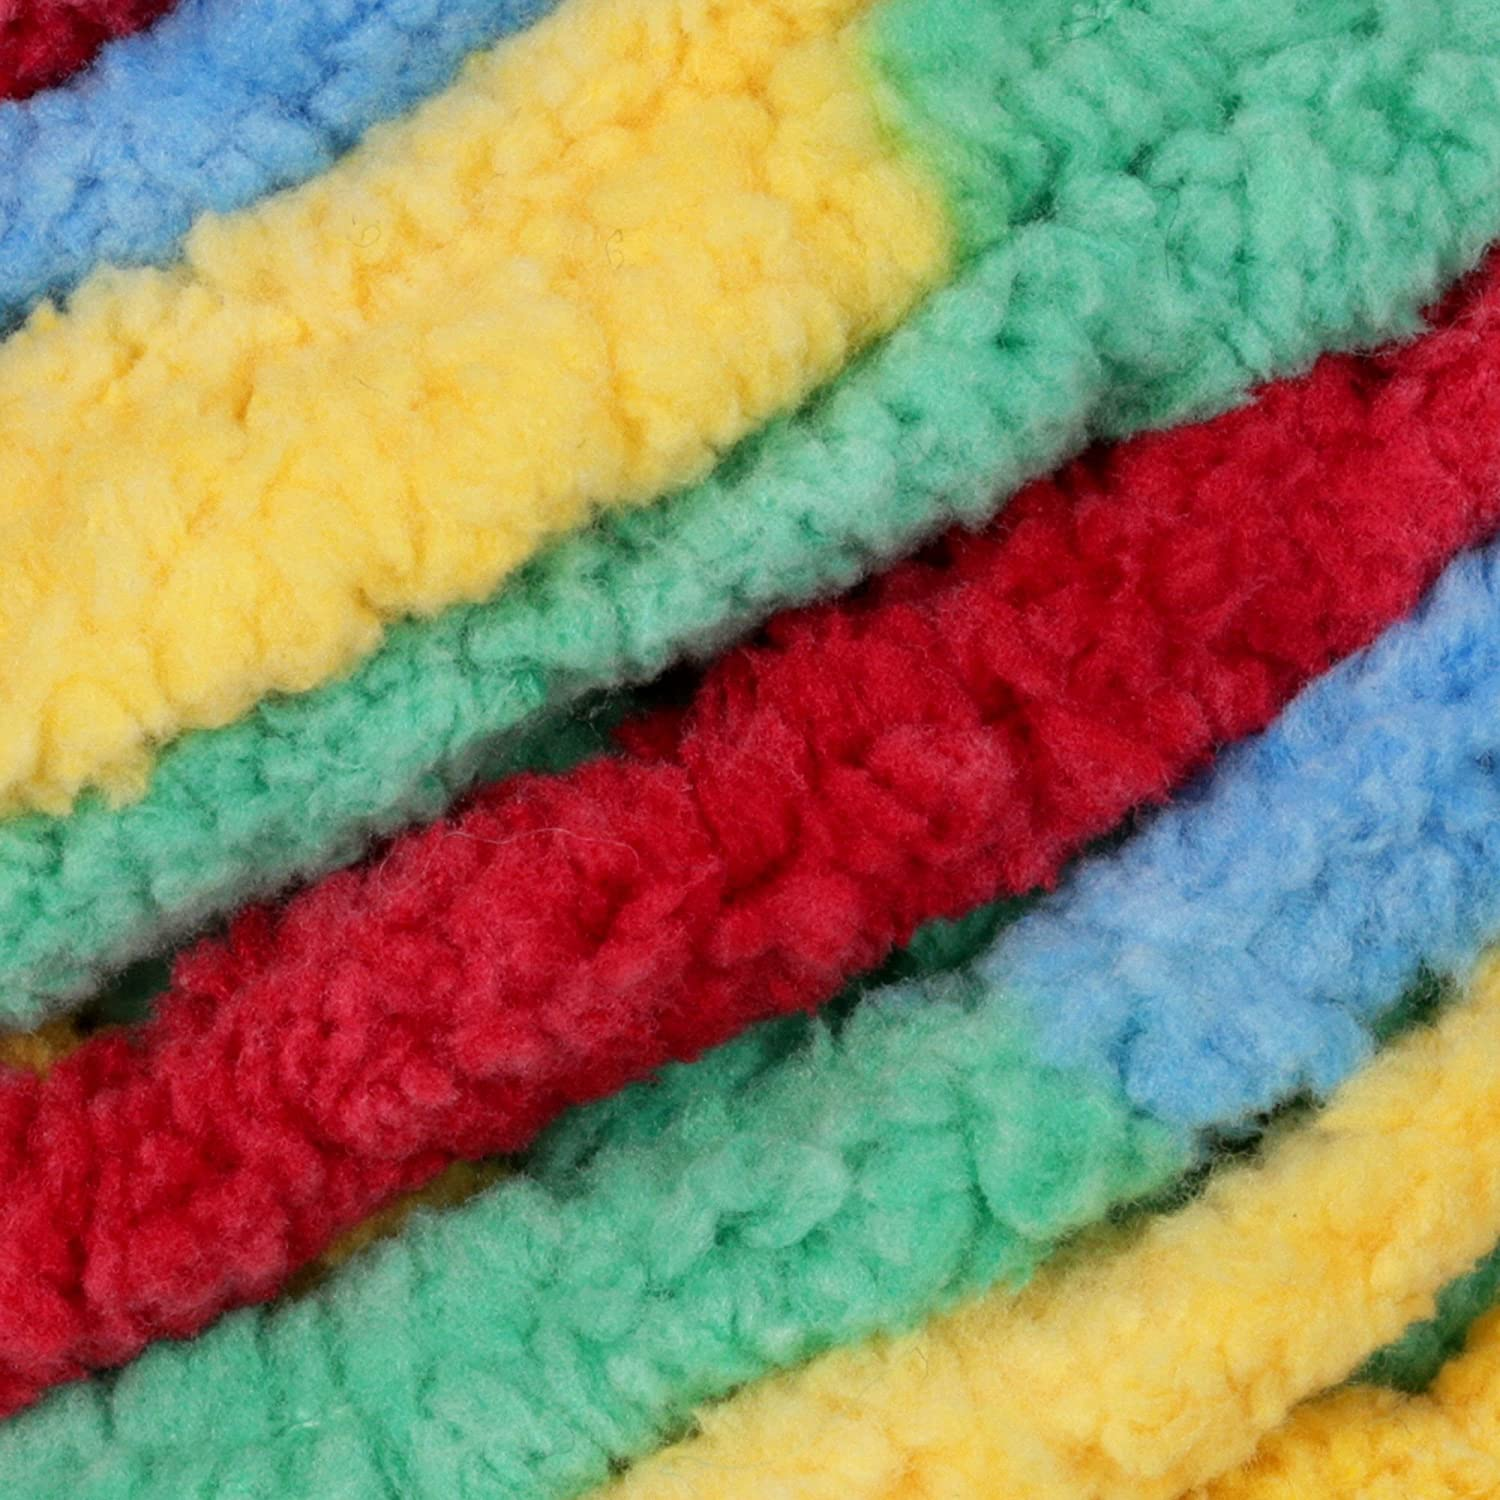 Bernat Blanket Bright Yarn Waterslide Varg